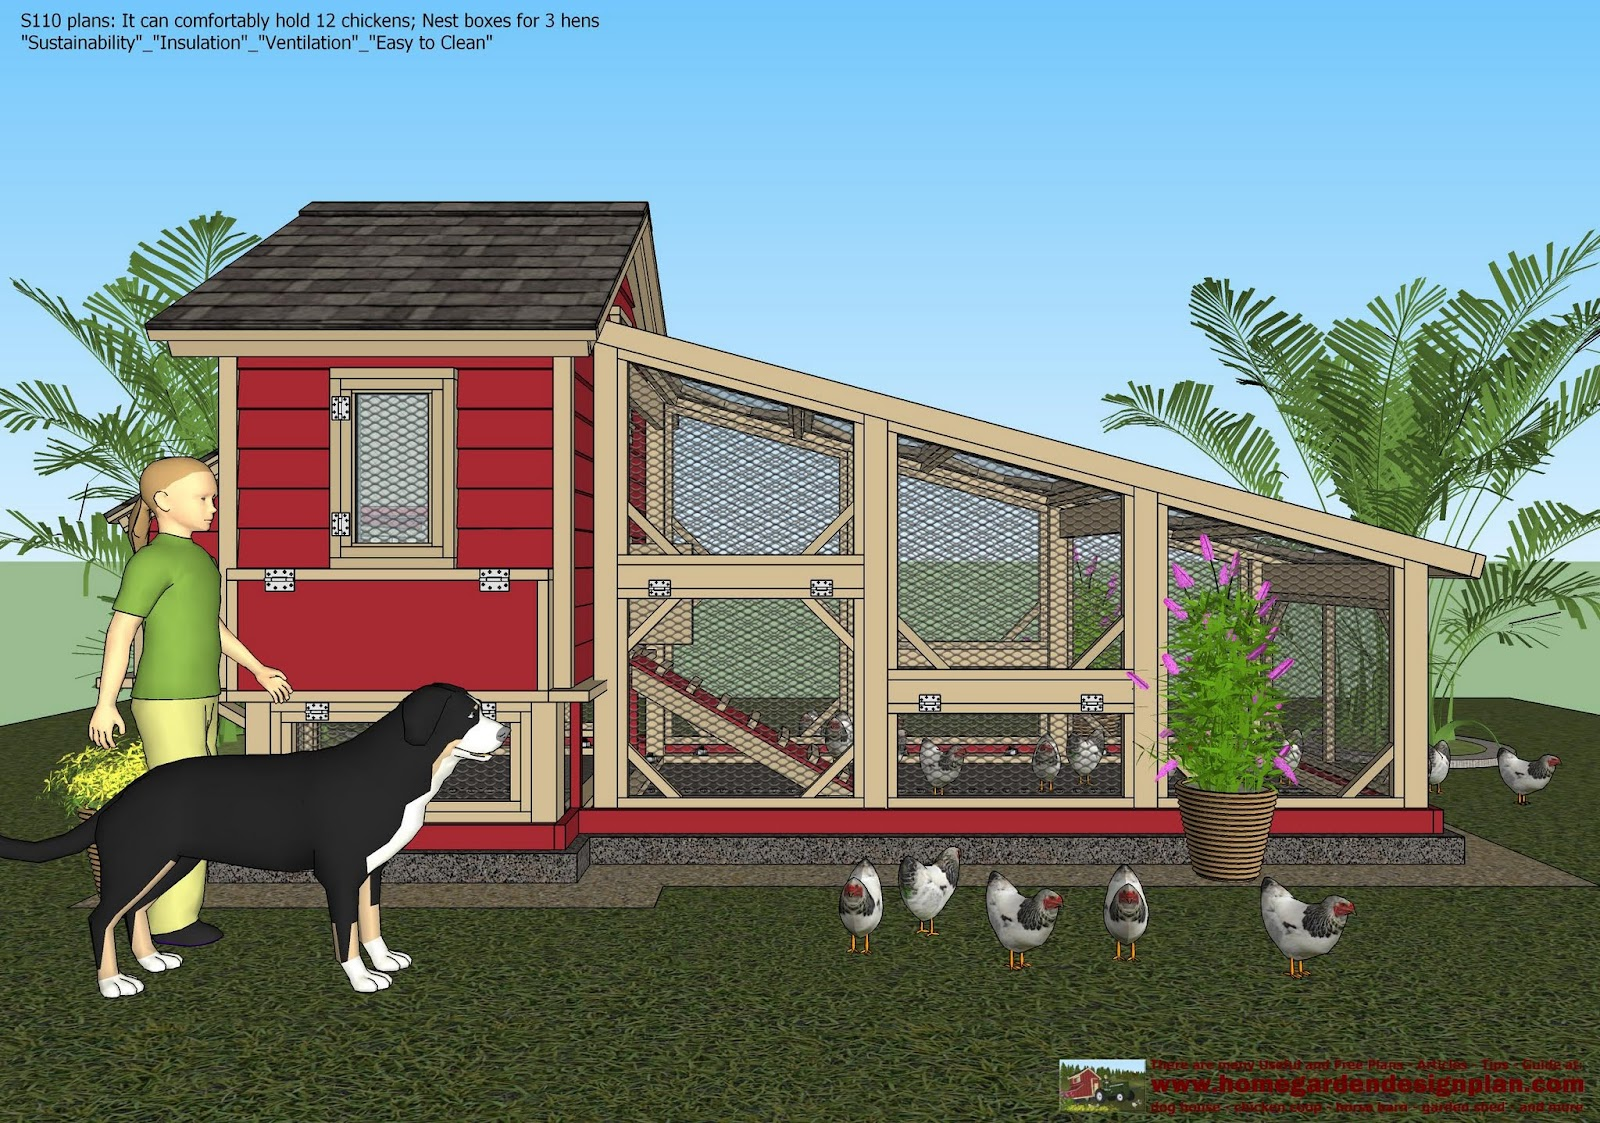 Home garden plans s110 chicken coop plans construction for Plans for chicken coops